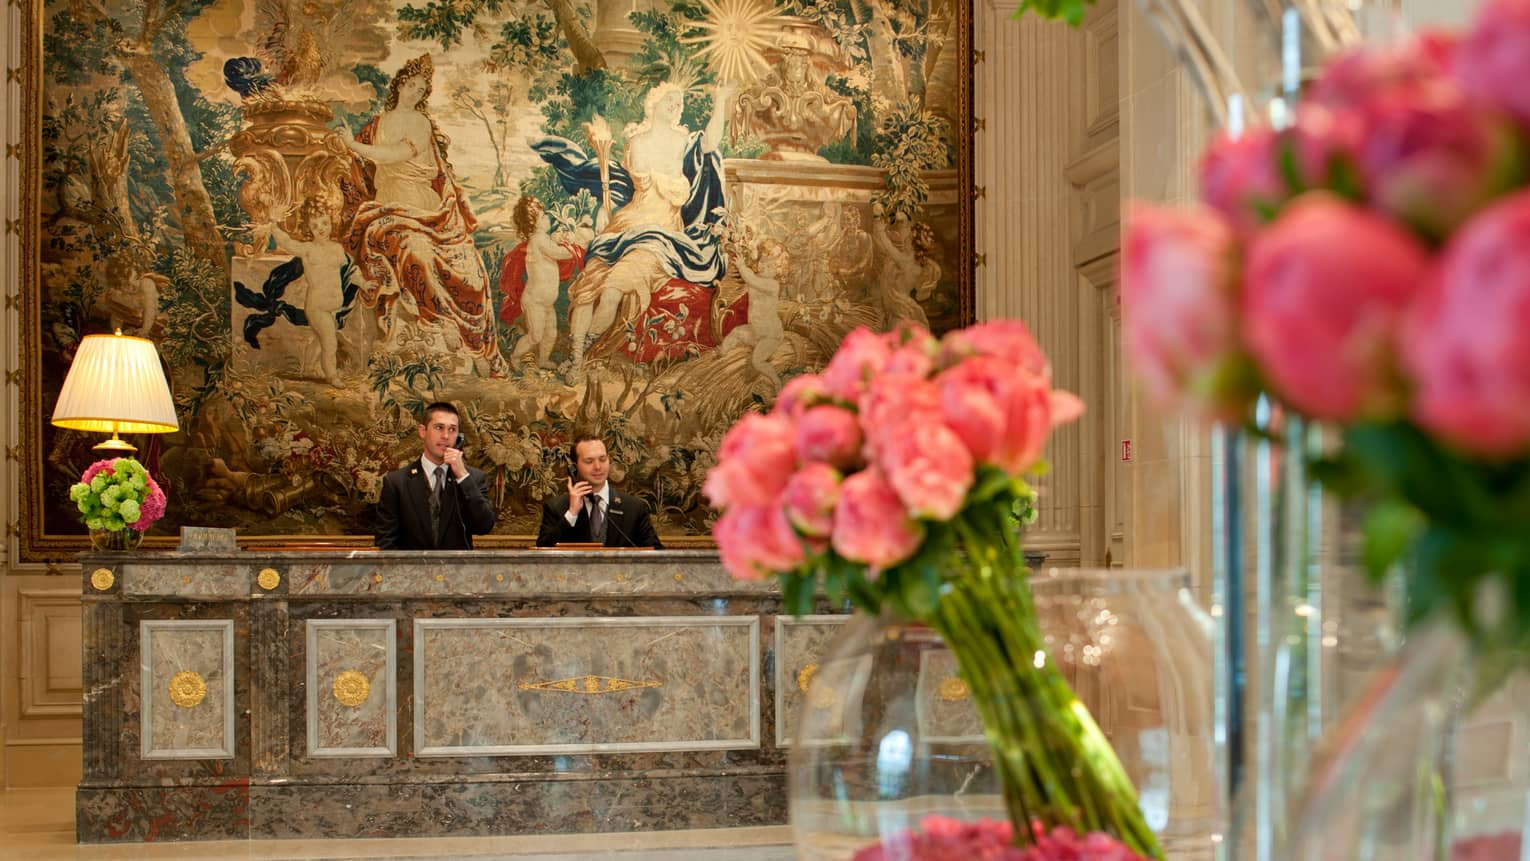 Hotel staff answer telephones at marble reception desk under large mural past pink flowers